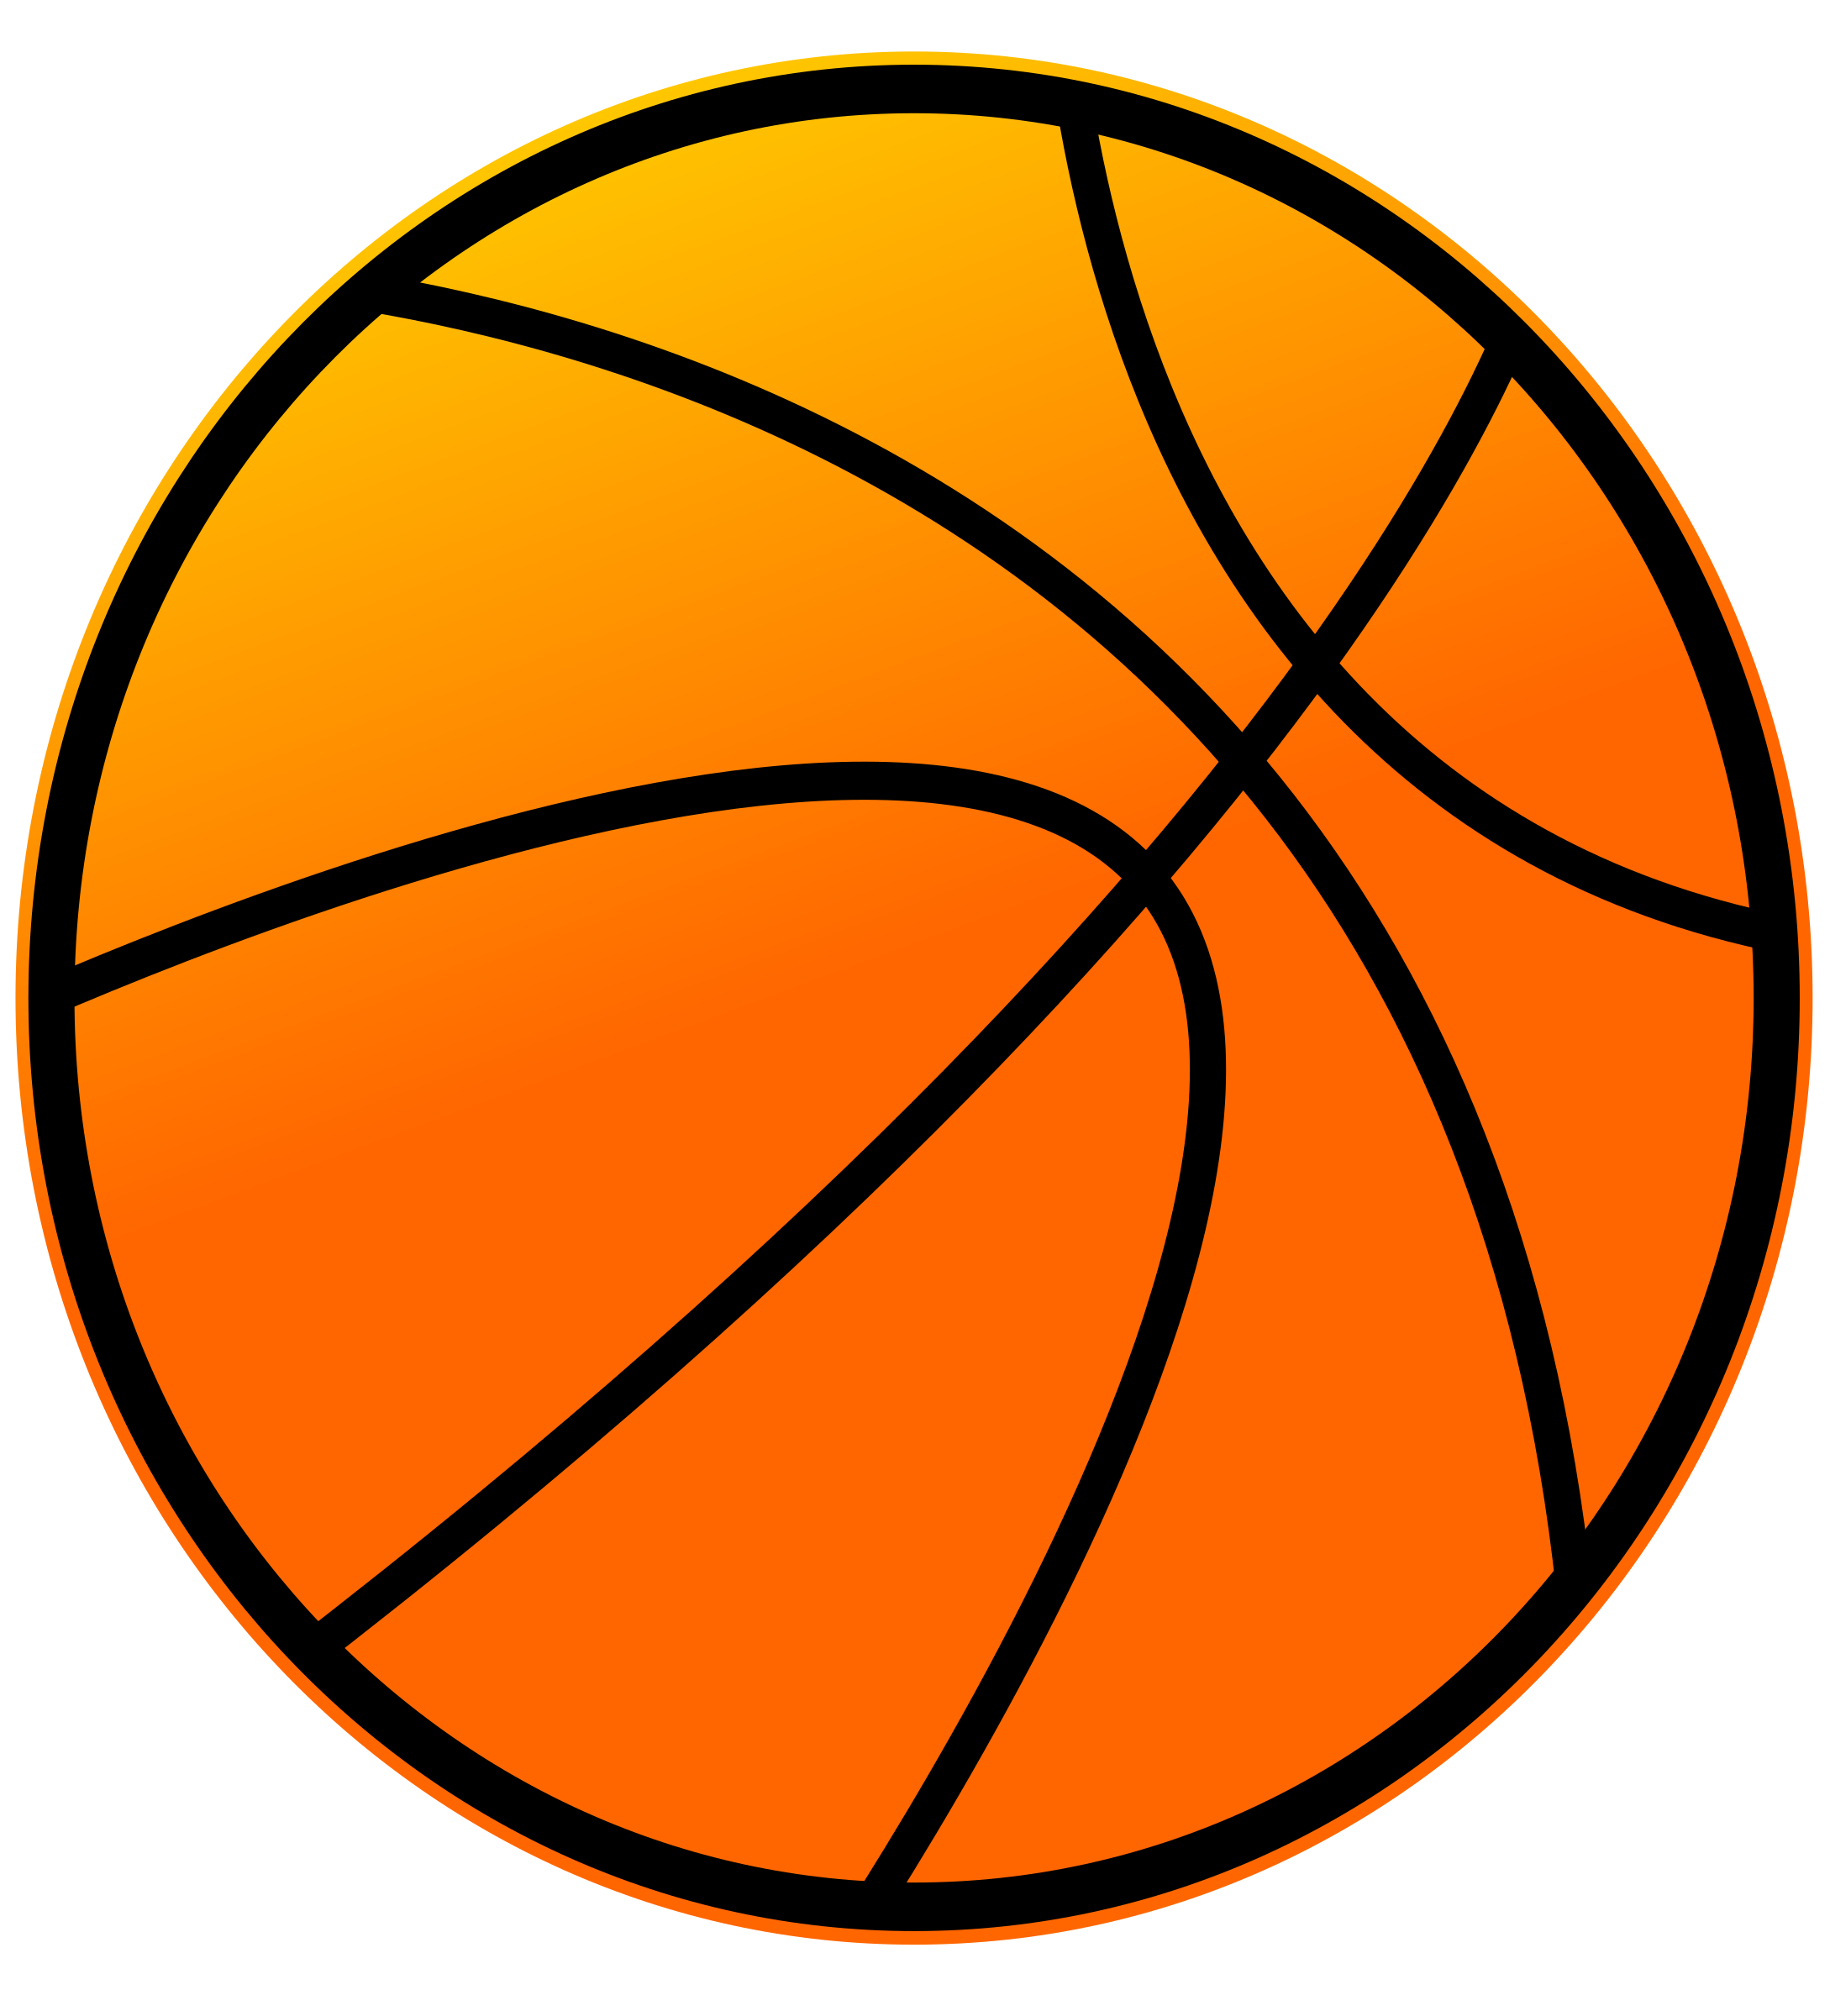 Basketball icon clipart clipart free download Clipart - Basketball Icon clipart free download